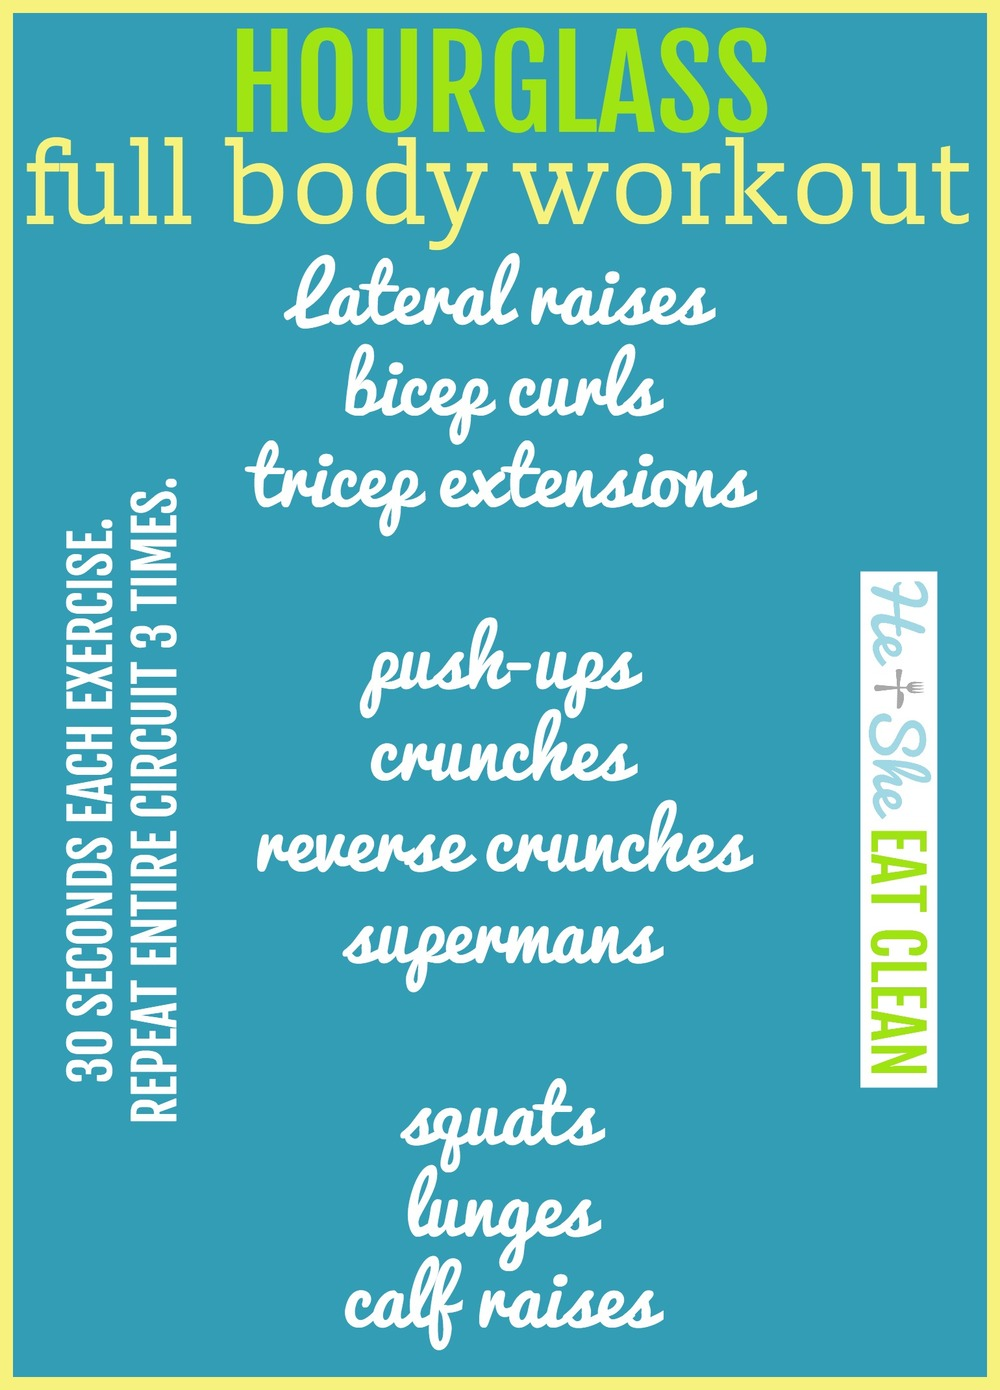 Hourglass Full Body Workout | He and She Eat Clean